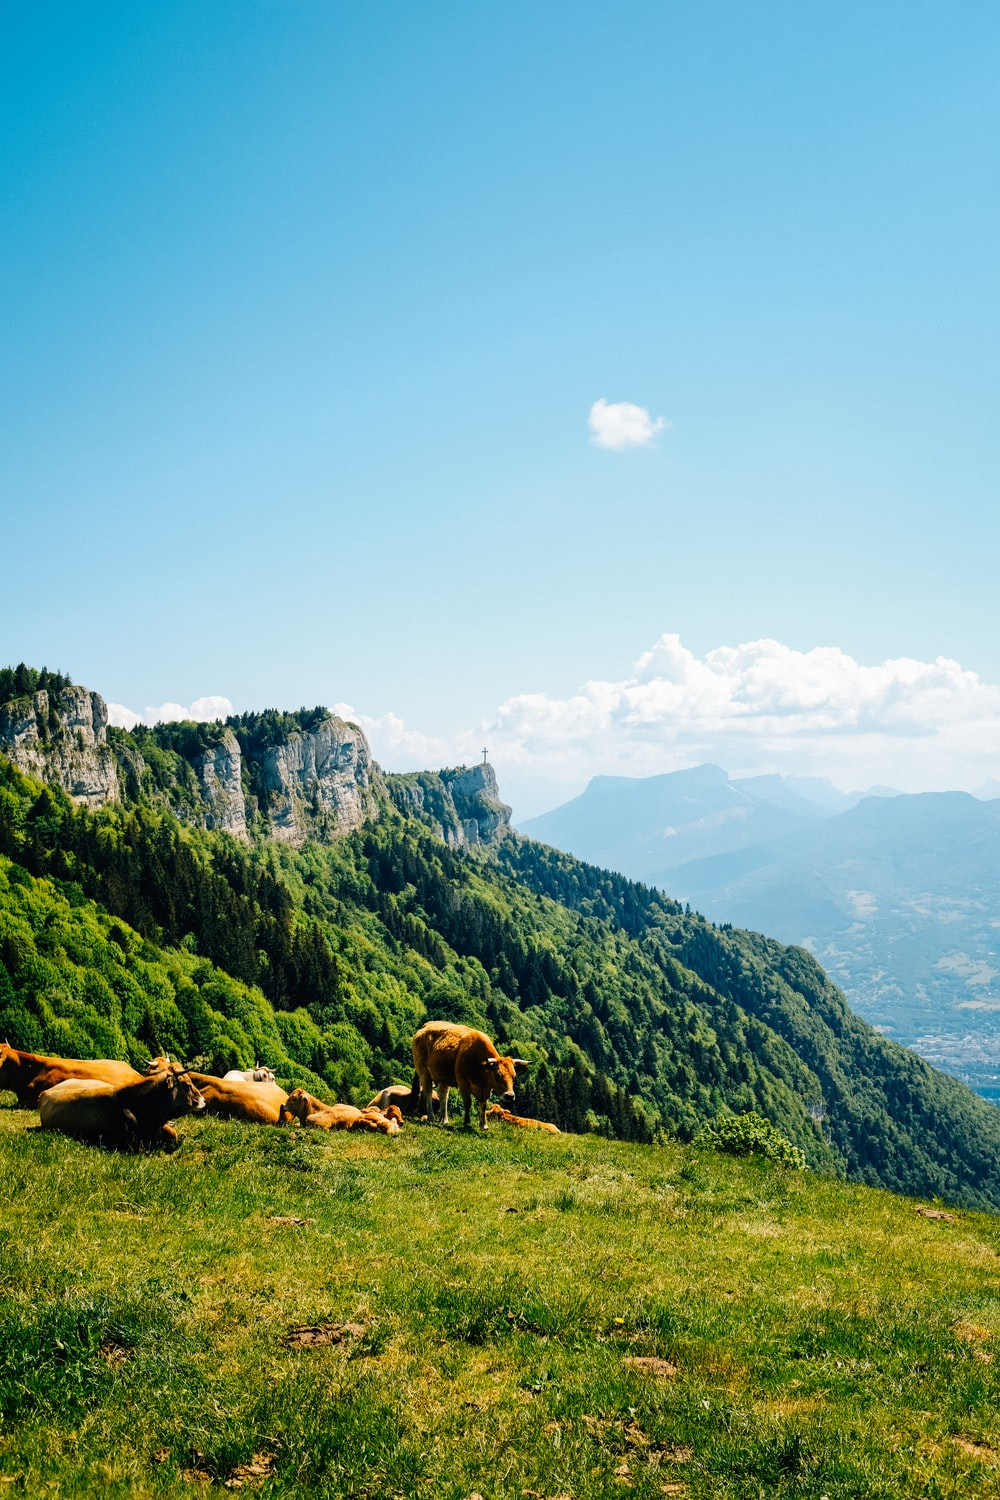 horses on green grass field near mountain under blue sky during daytime